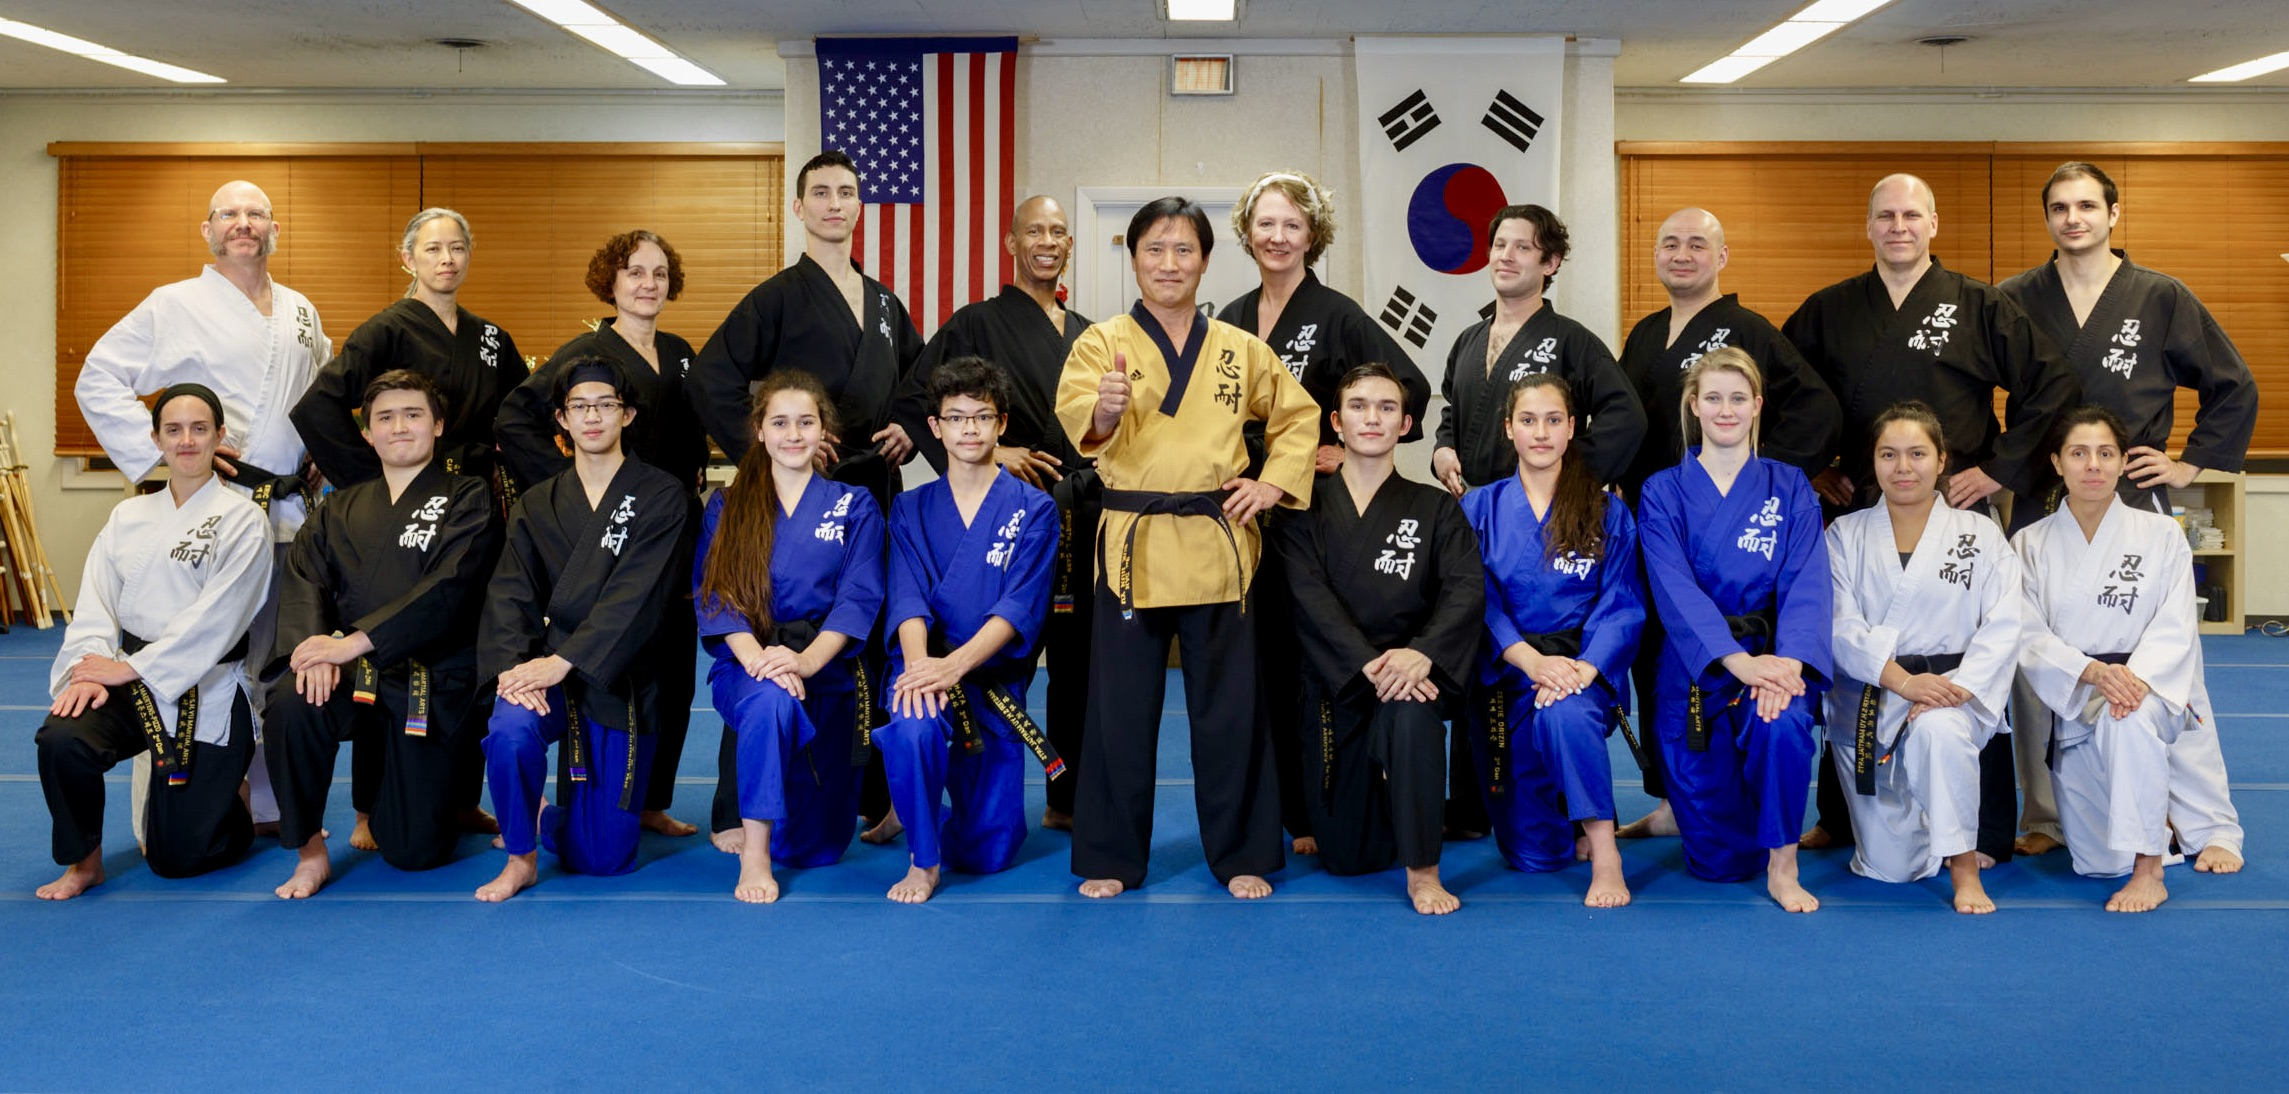 Master S.H. Yu Martial Arts Instructors